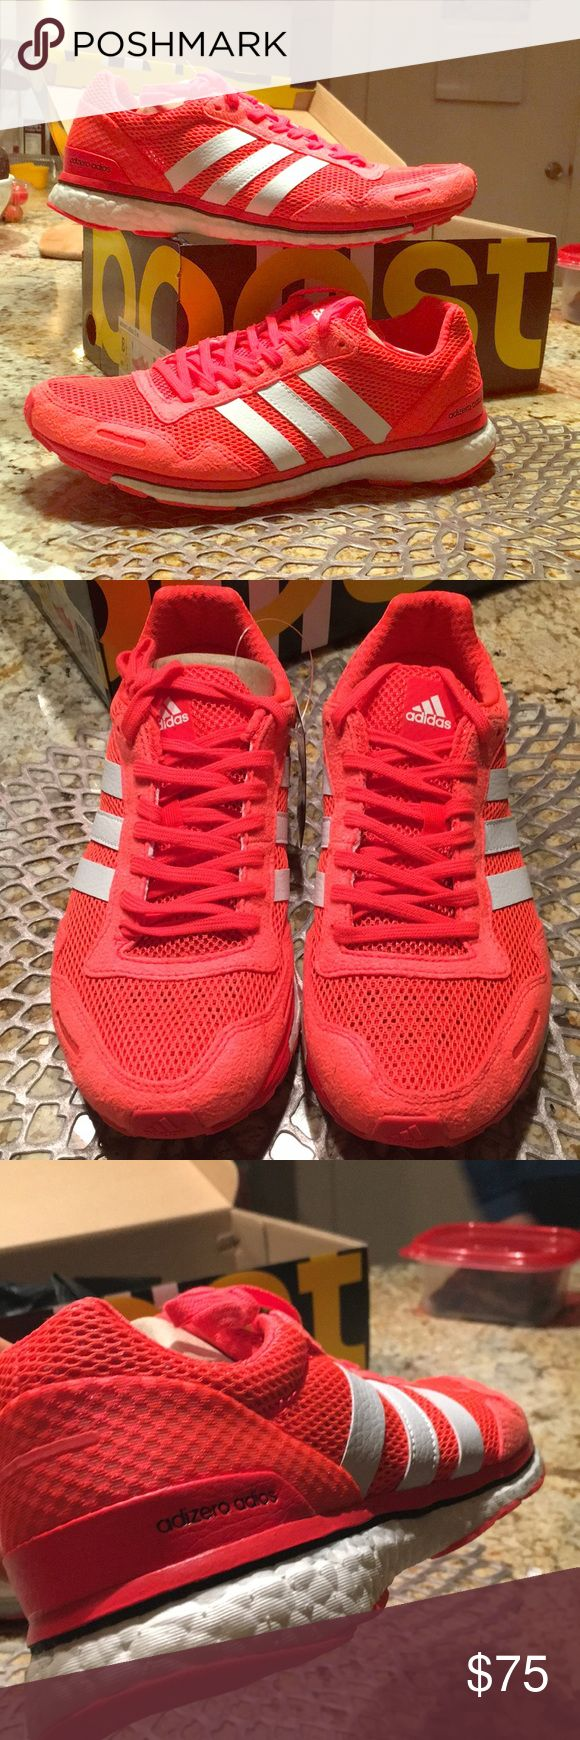 Brand new adidas adios light-weight shoe! These shoes are bright orange, they look reddish in the photos. Great light-weight running /training show with boost technology sole. adidas Shoes Athletic Shoes